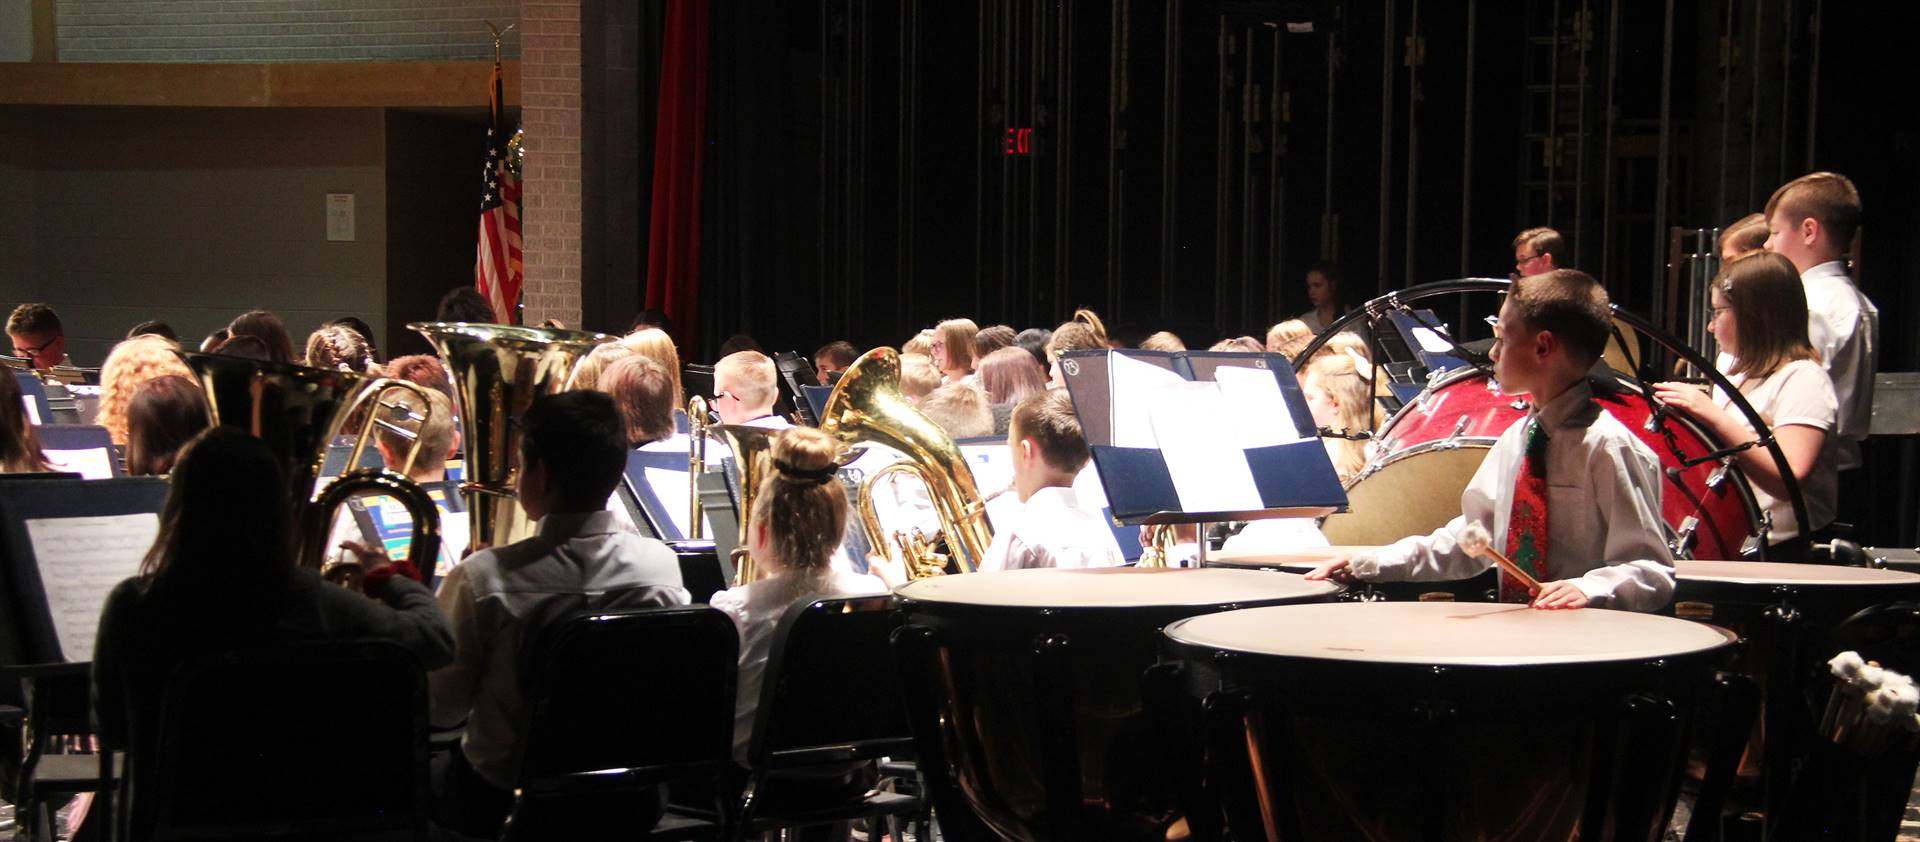 medium shot of seventh and eighth grade band students performing